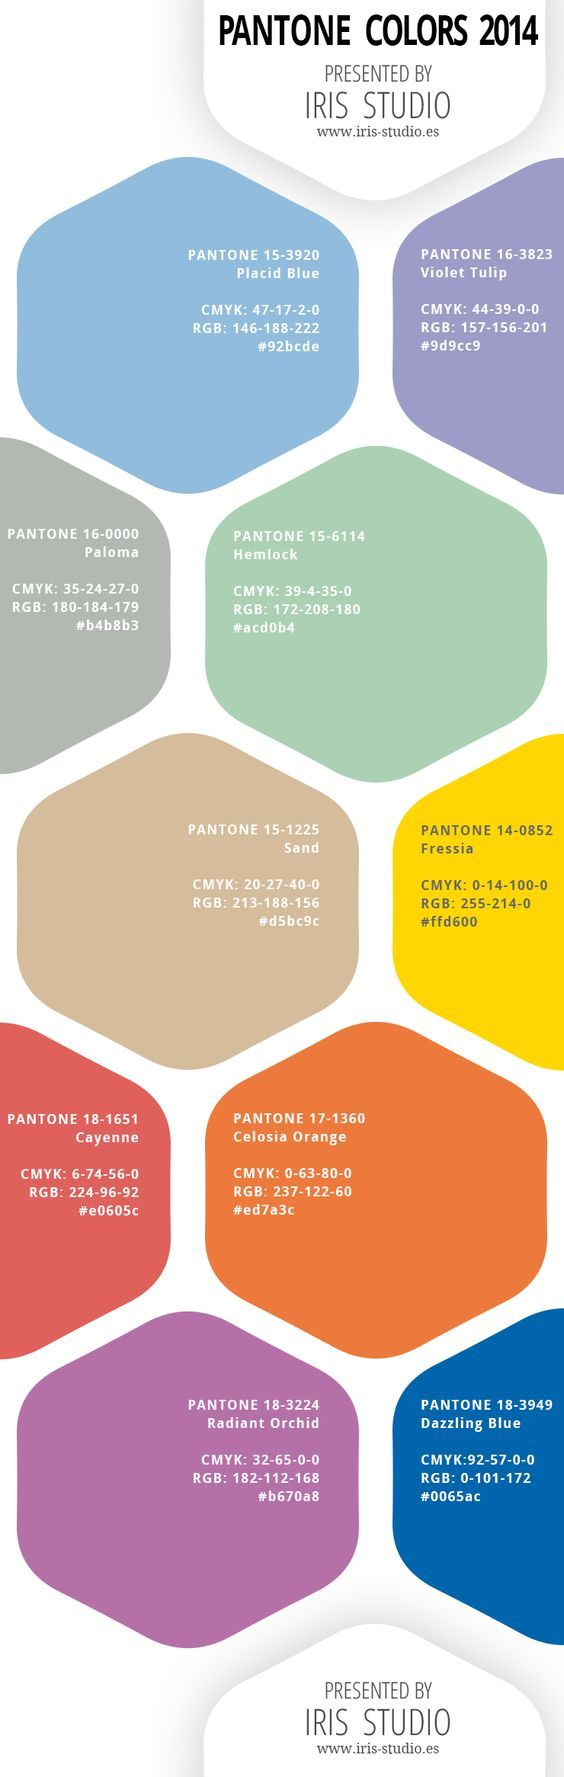 Pantone Colors for Spring 2014: